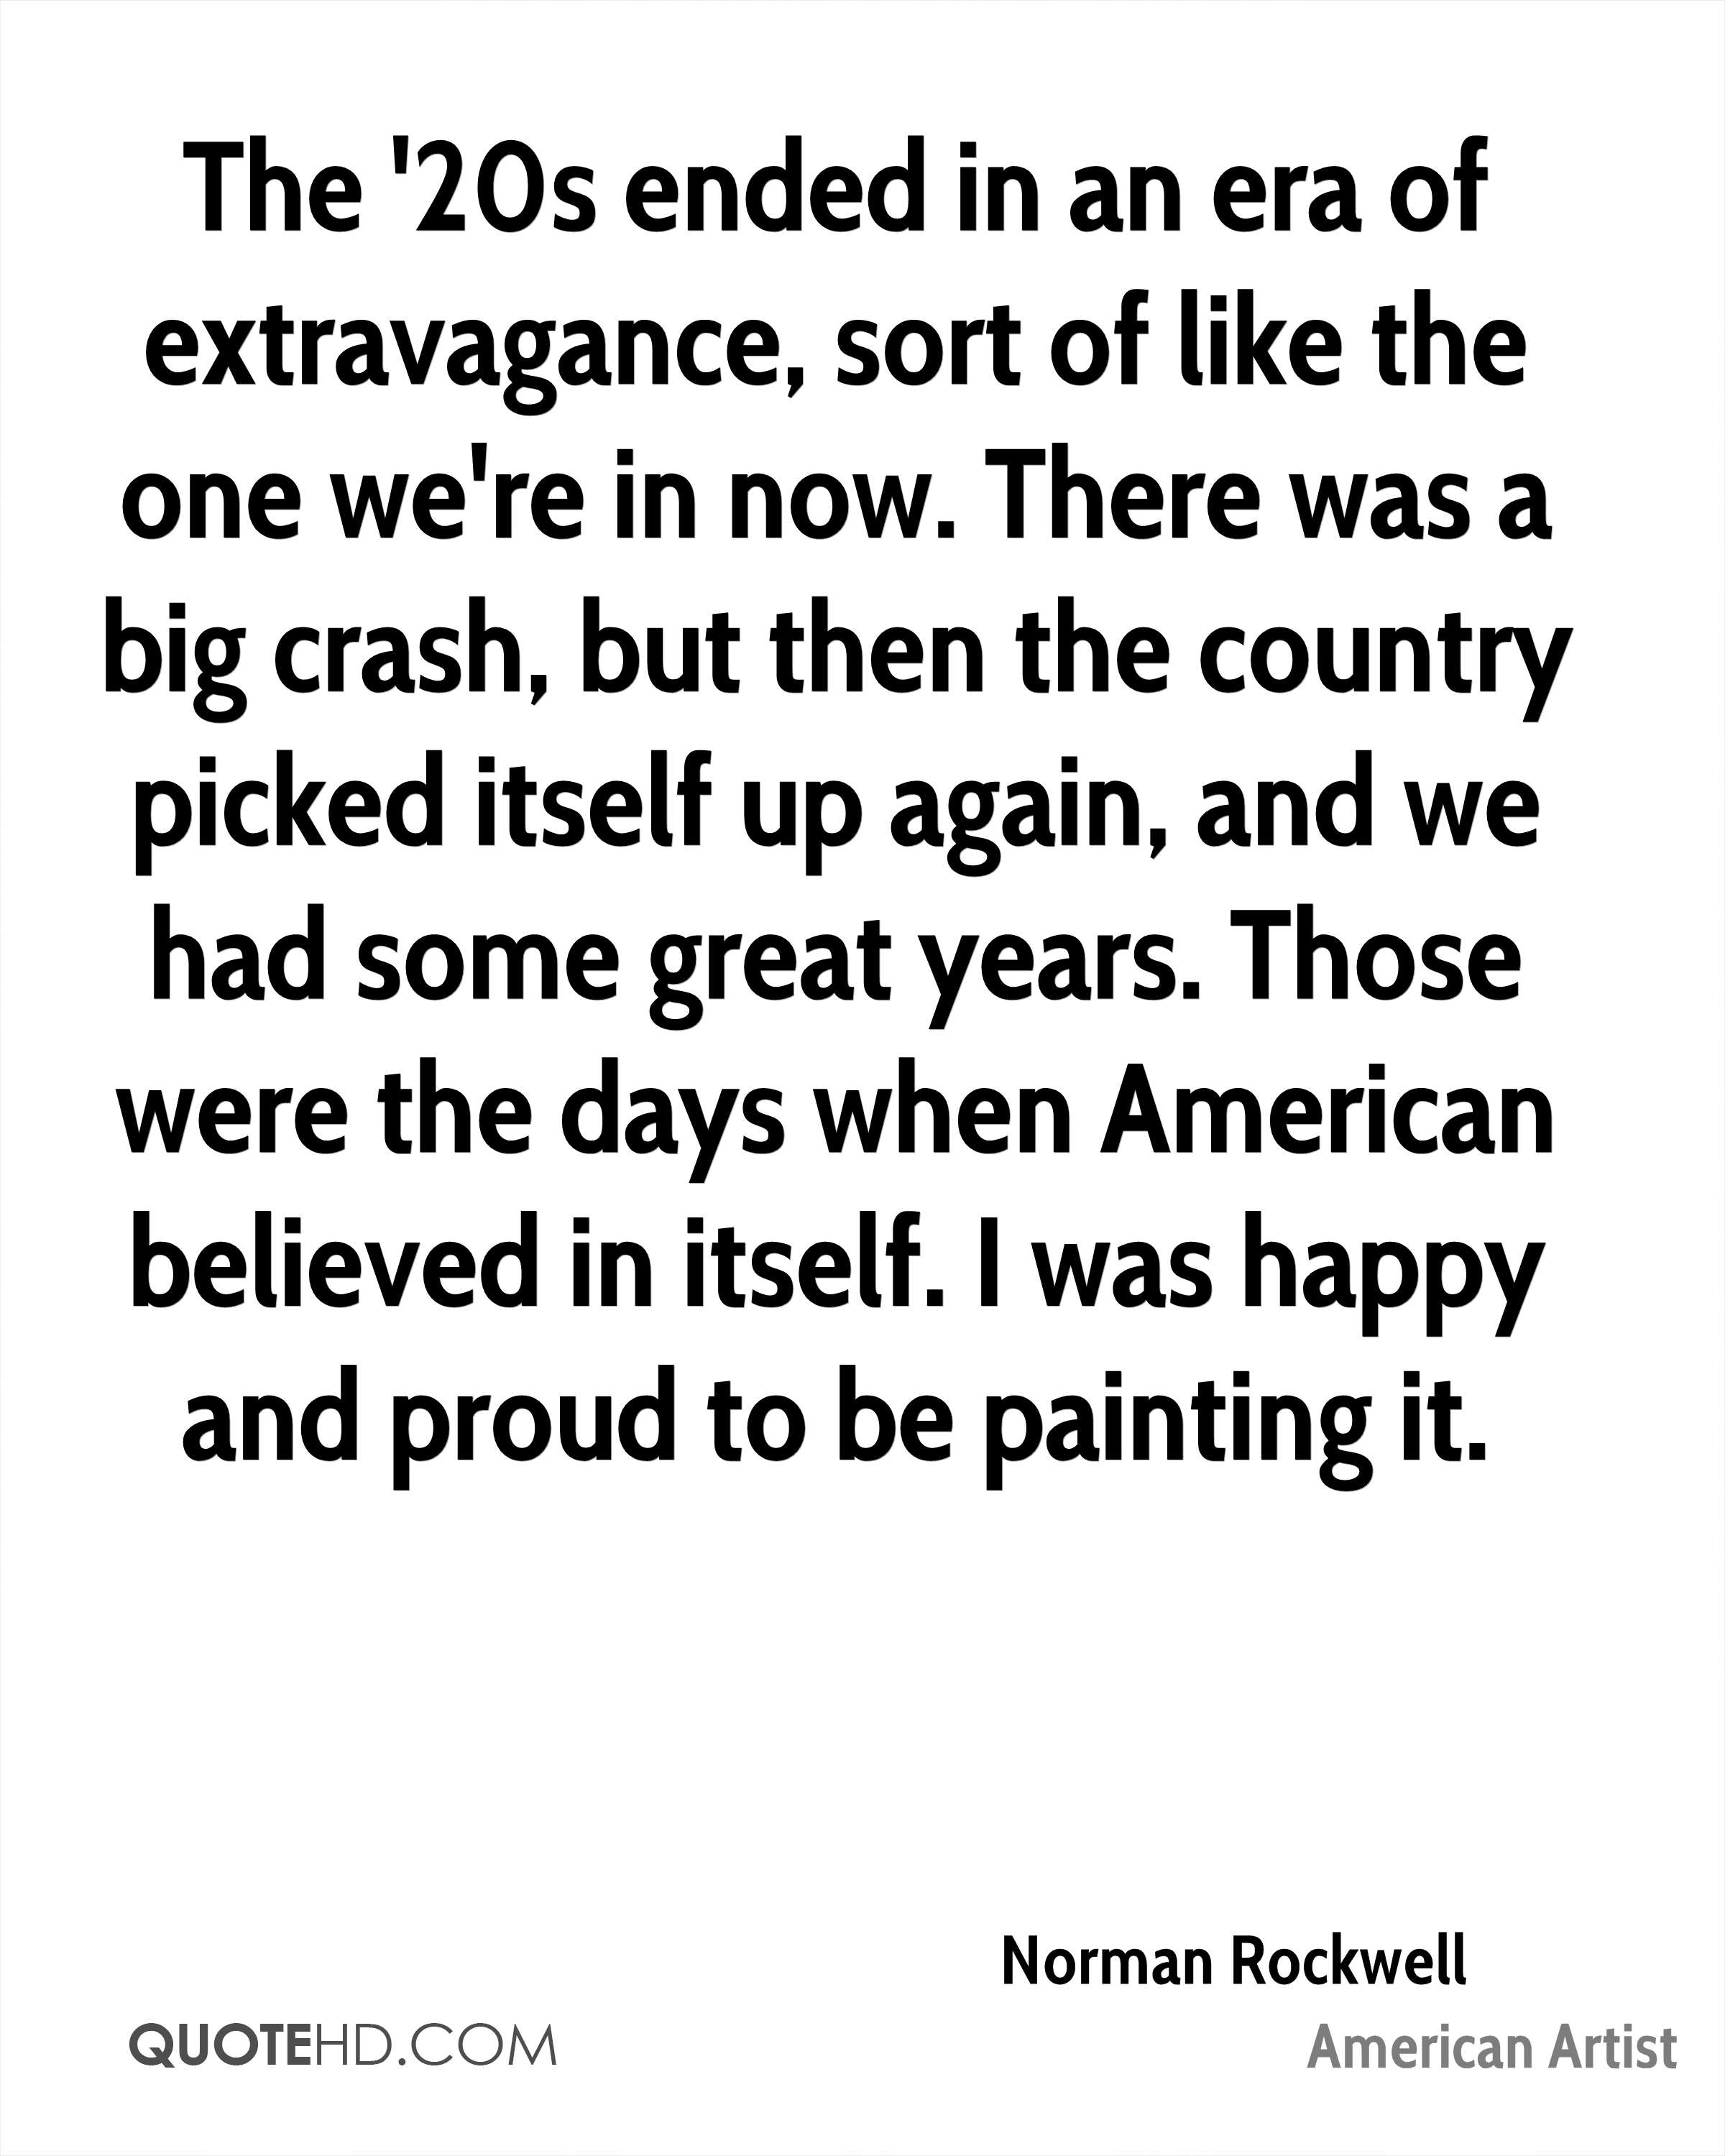 The '20s ended in an era of extravagance, sort of like the one we're in now. There was a big crash, but then the country picked itself up again, and we had some great years. Those were the days when American believed in itself. I was happy and proud to be painting it.